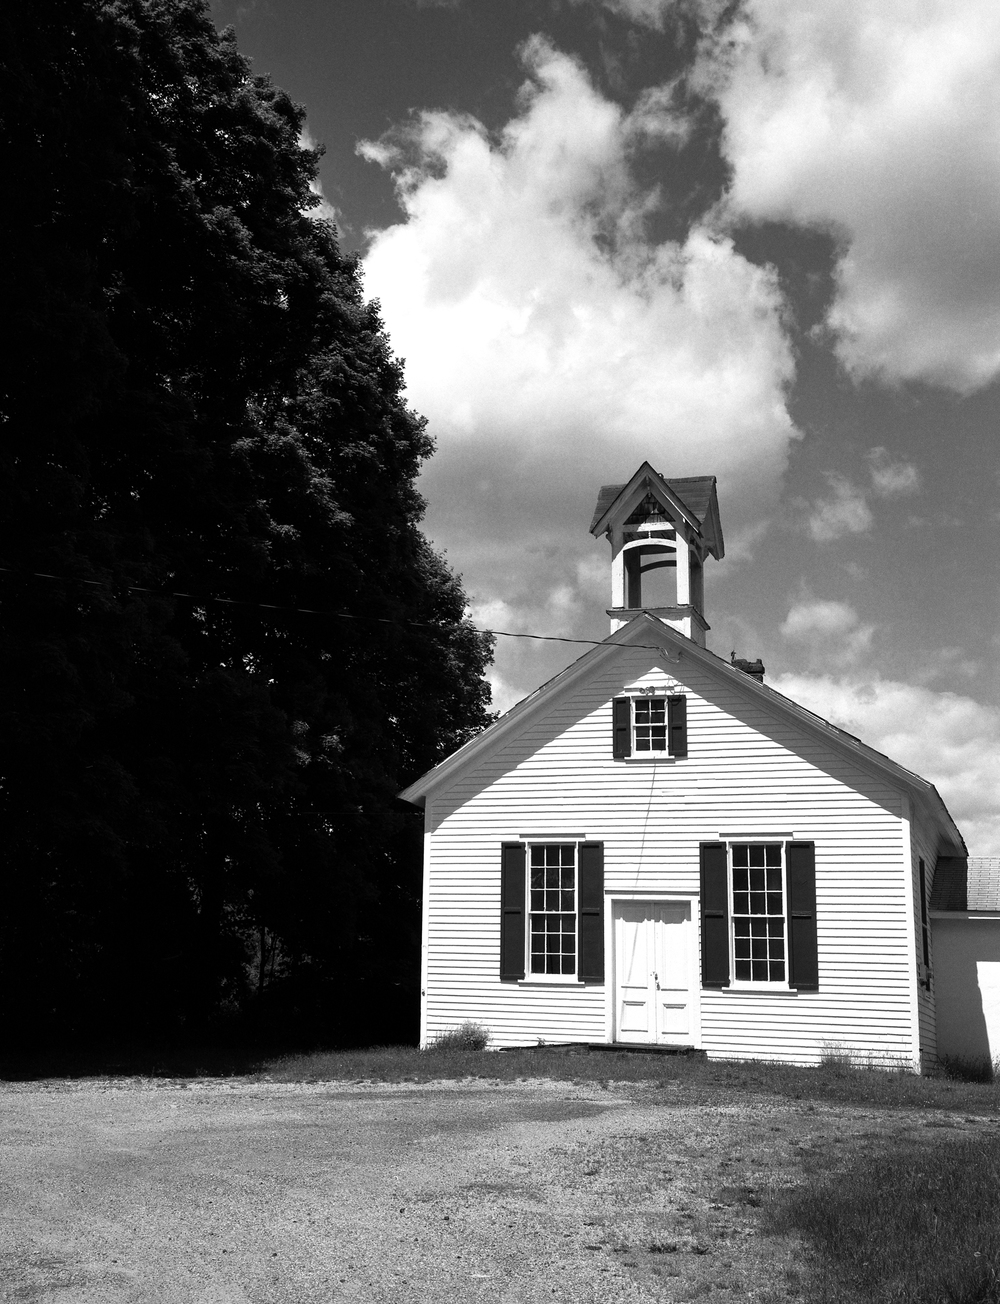 4x5_for_365_project_0156_Wallpack_Center_schoolhouse.jpg